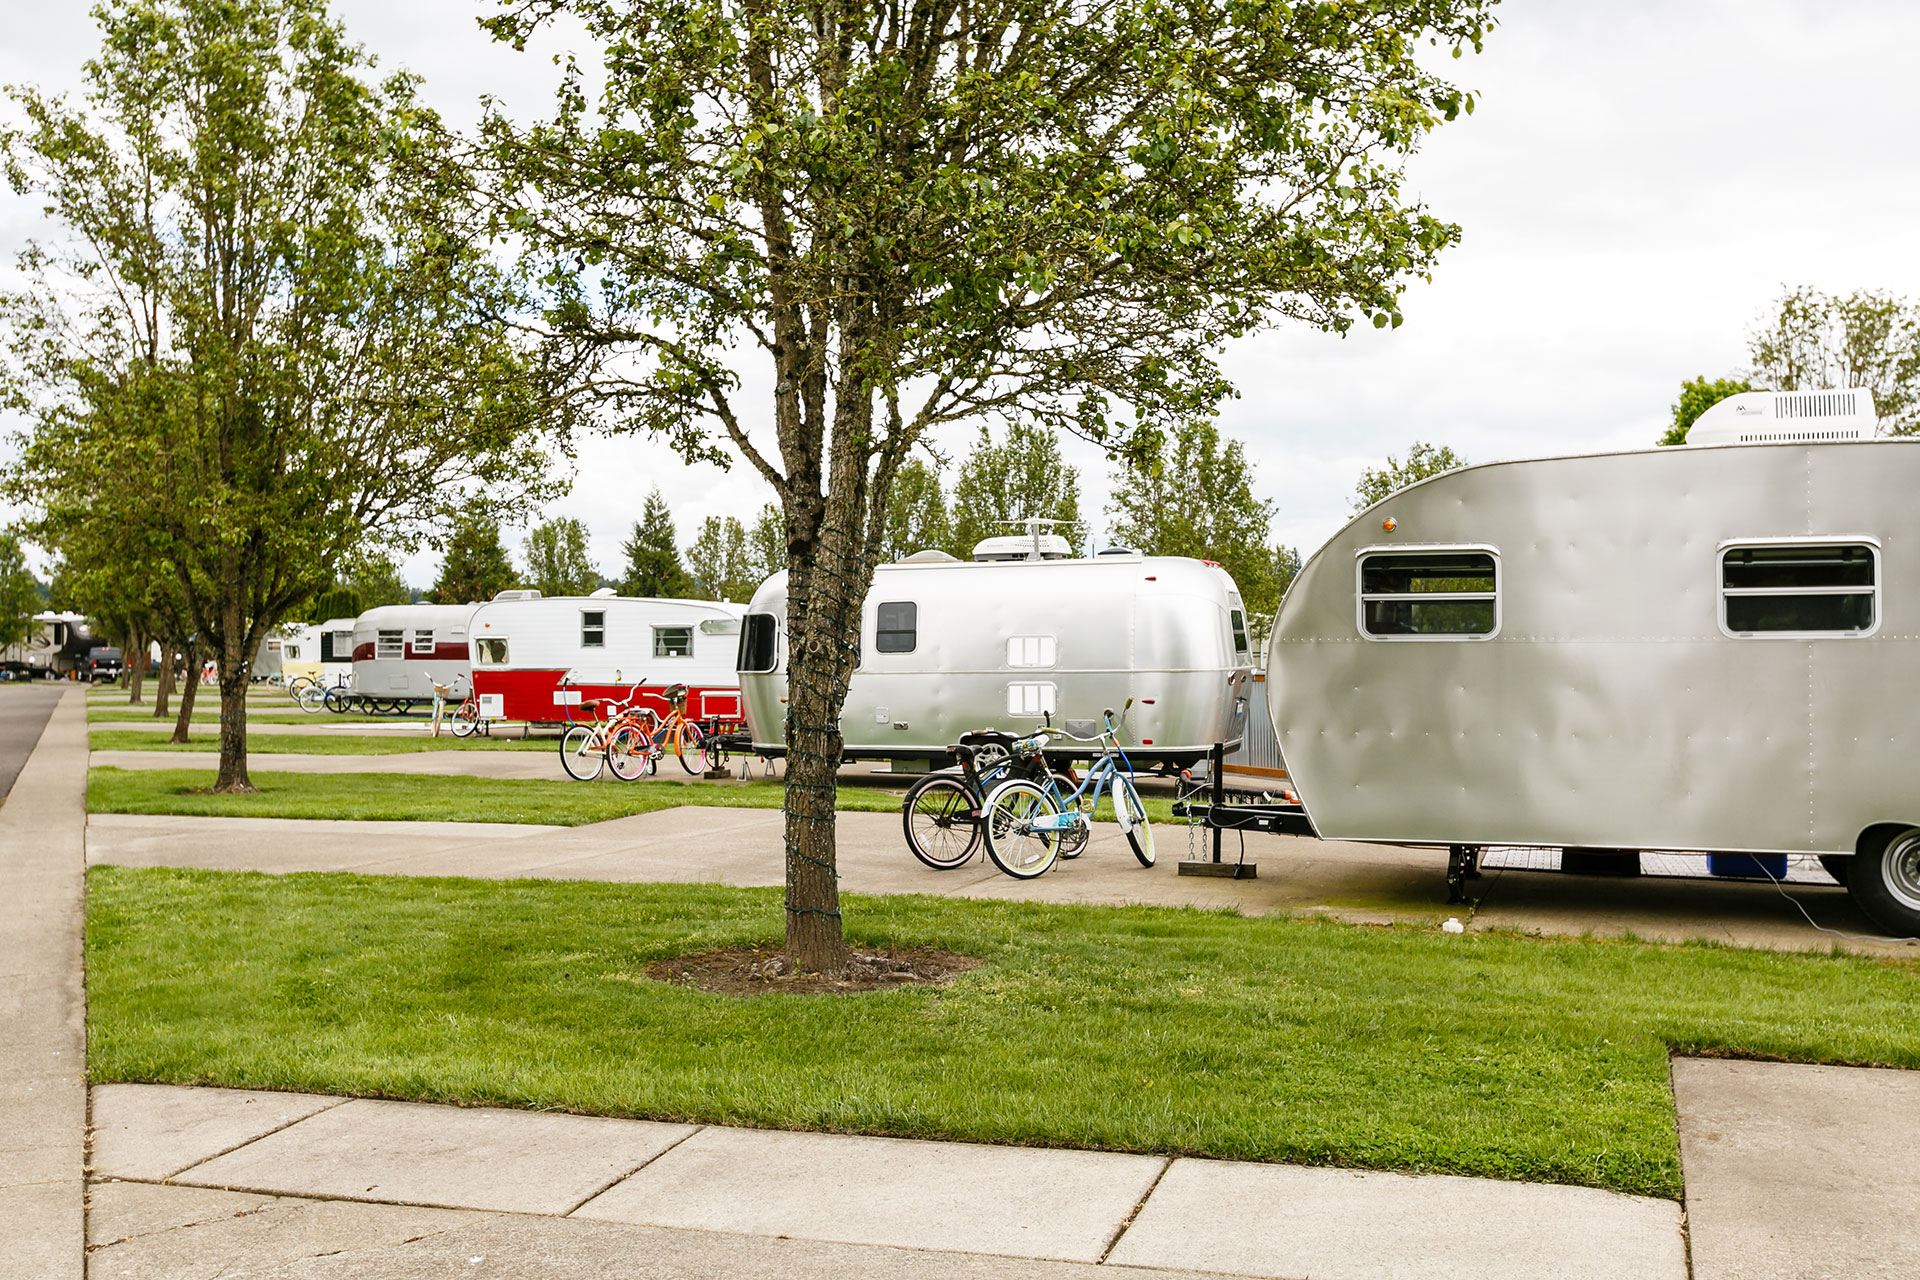 The Vintages Trailer Resort in Dayton, Oregon